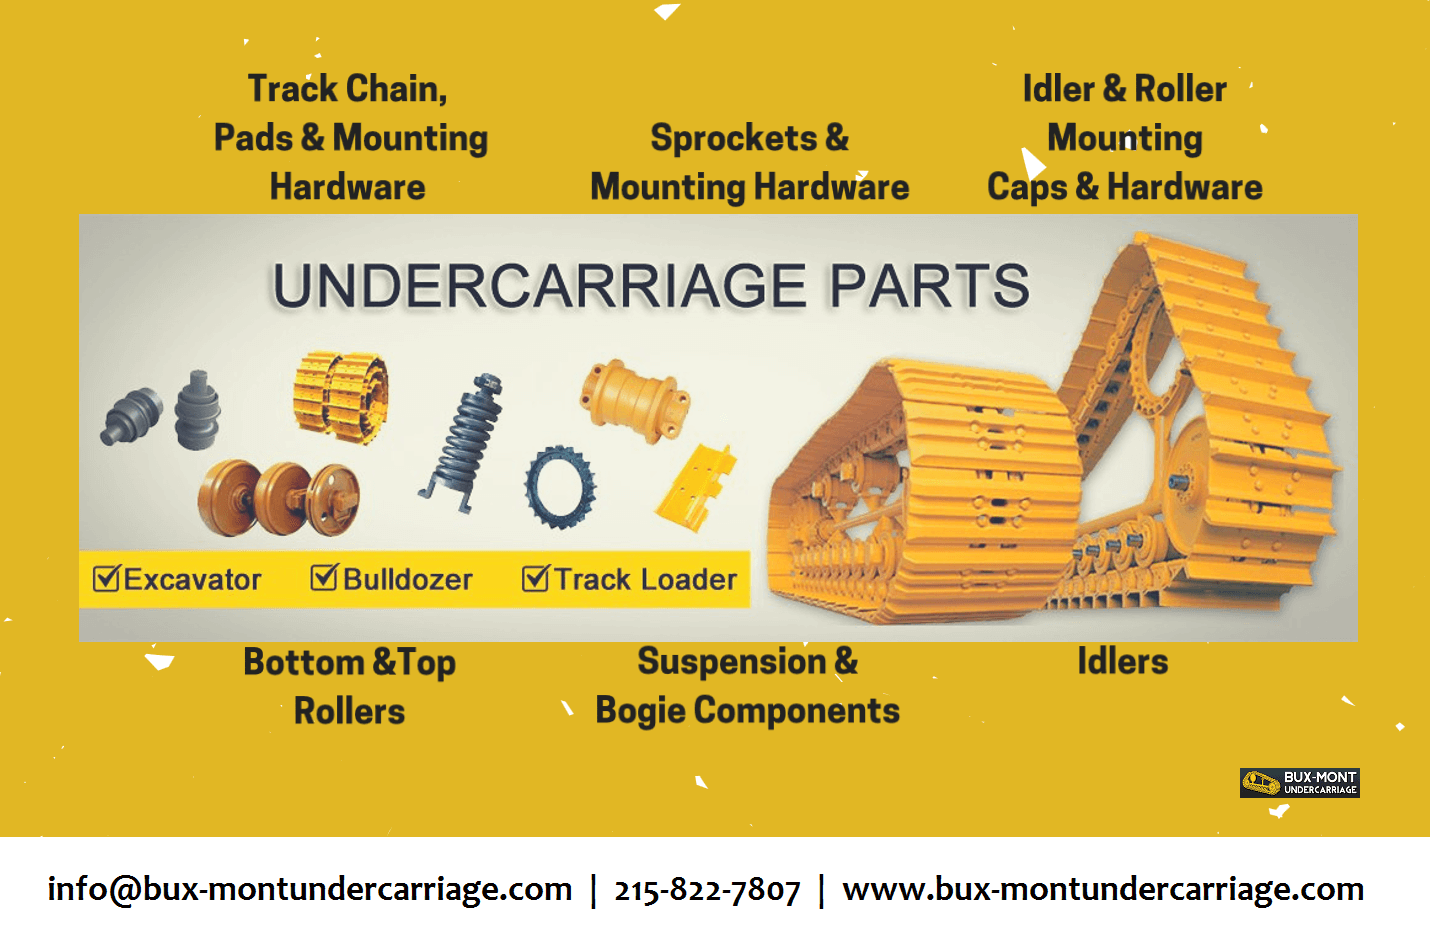 BMU has solutions for your undercarriage parts of bulldozer